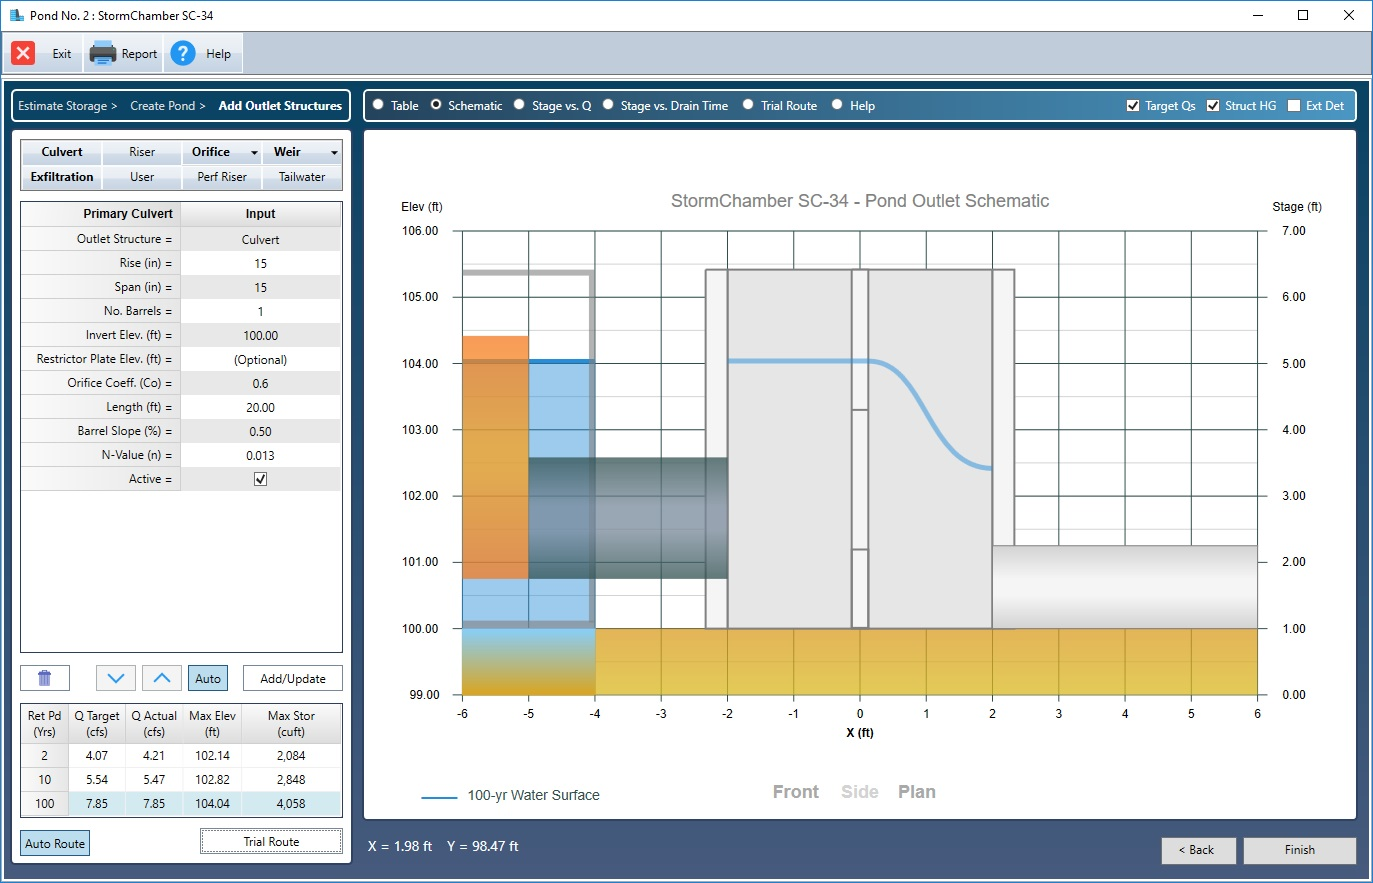 hydrology and hydraulics software